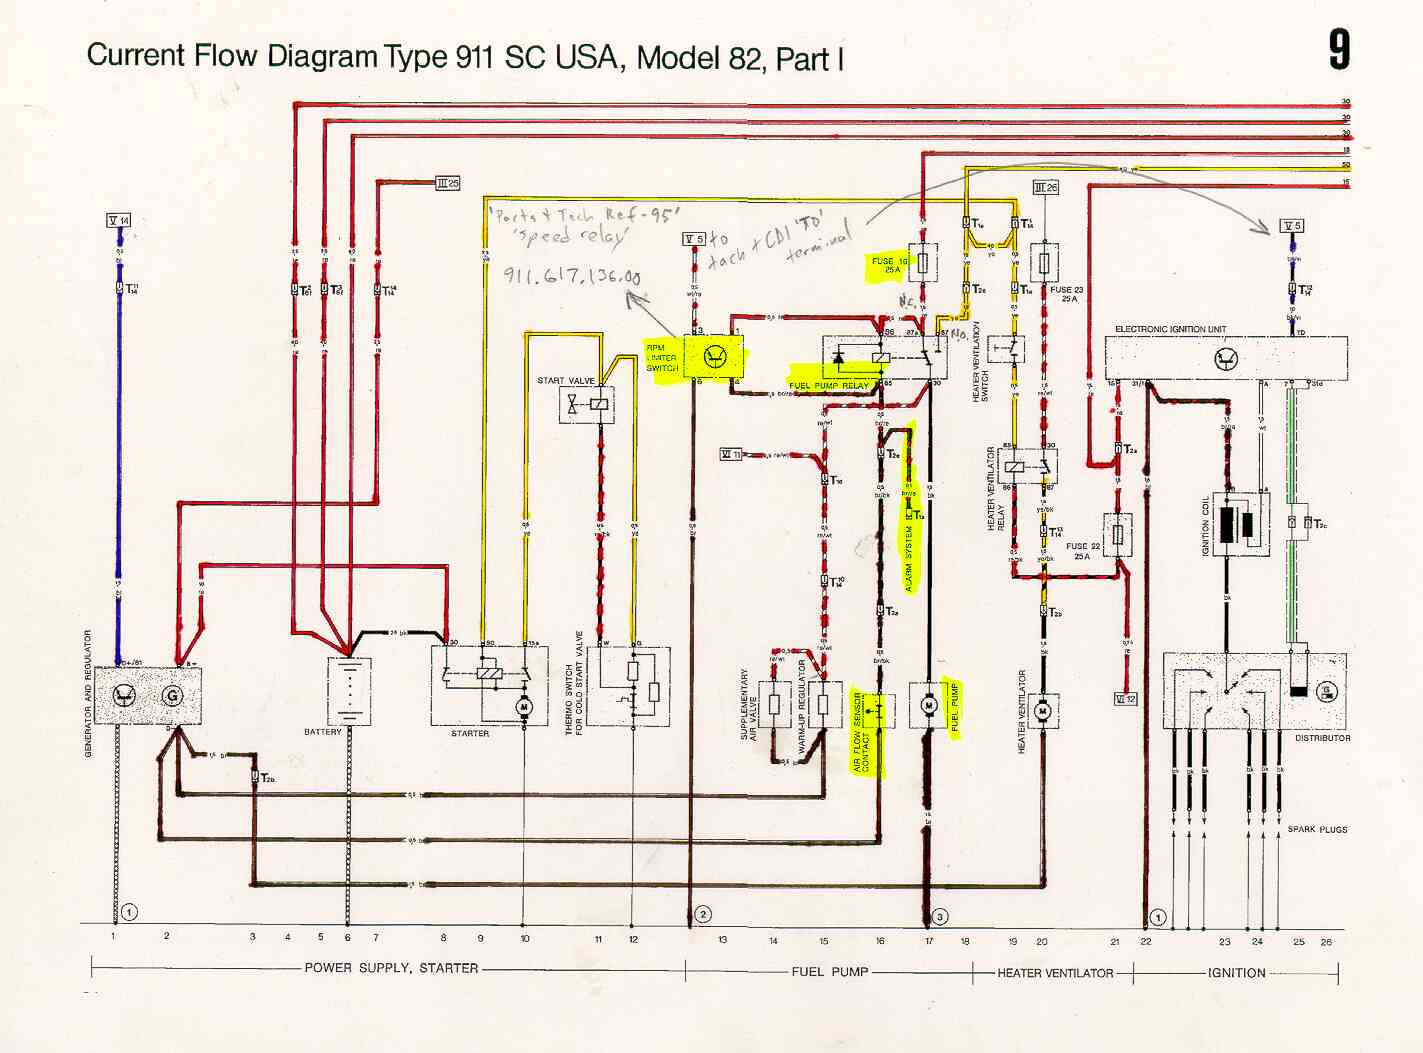 Whirlpool Oven Wiring Diagram in addition Porsche 914 Engine Number Location additionally 1970 Porsche 911 Wiring Diagram further Triumph Tr3a Wiring Diagram furthermore Porsche 356 Wiring Diagram. on porsche 912 wiring diagram